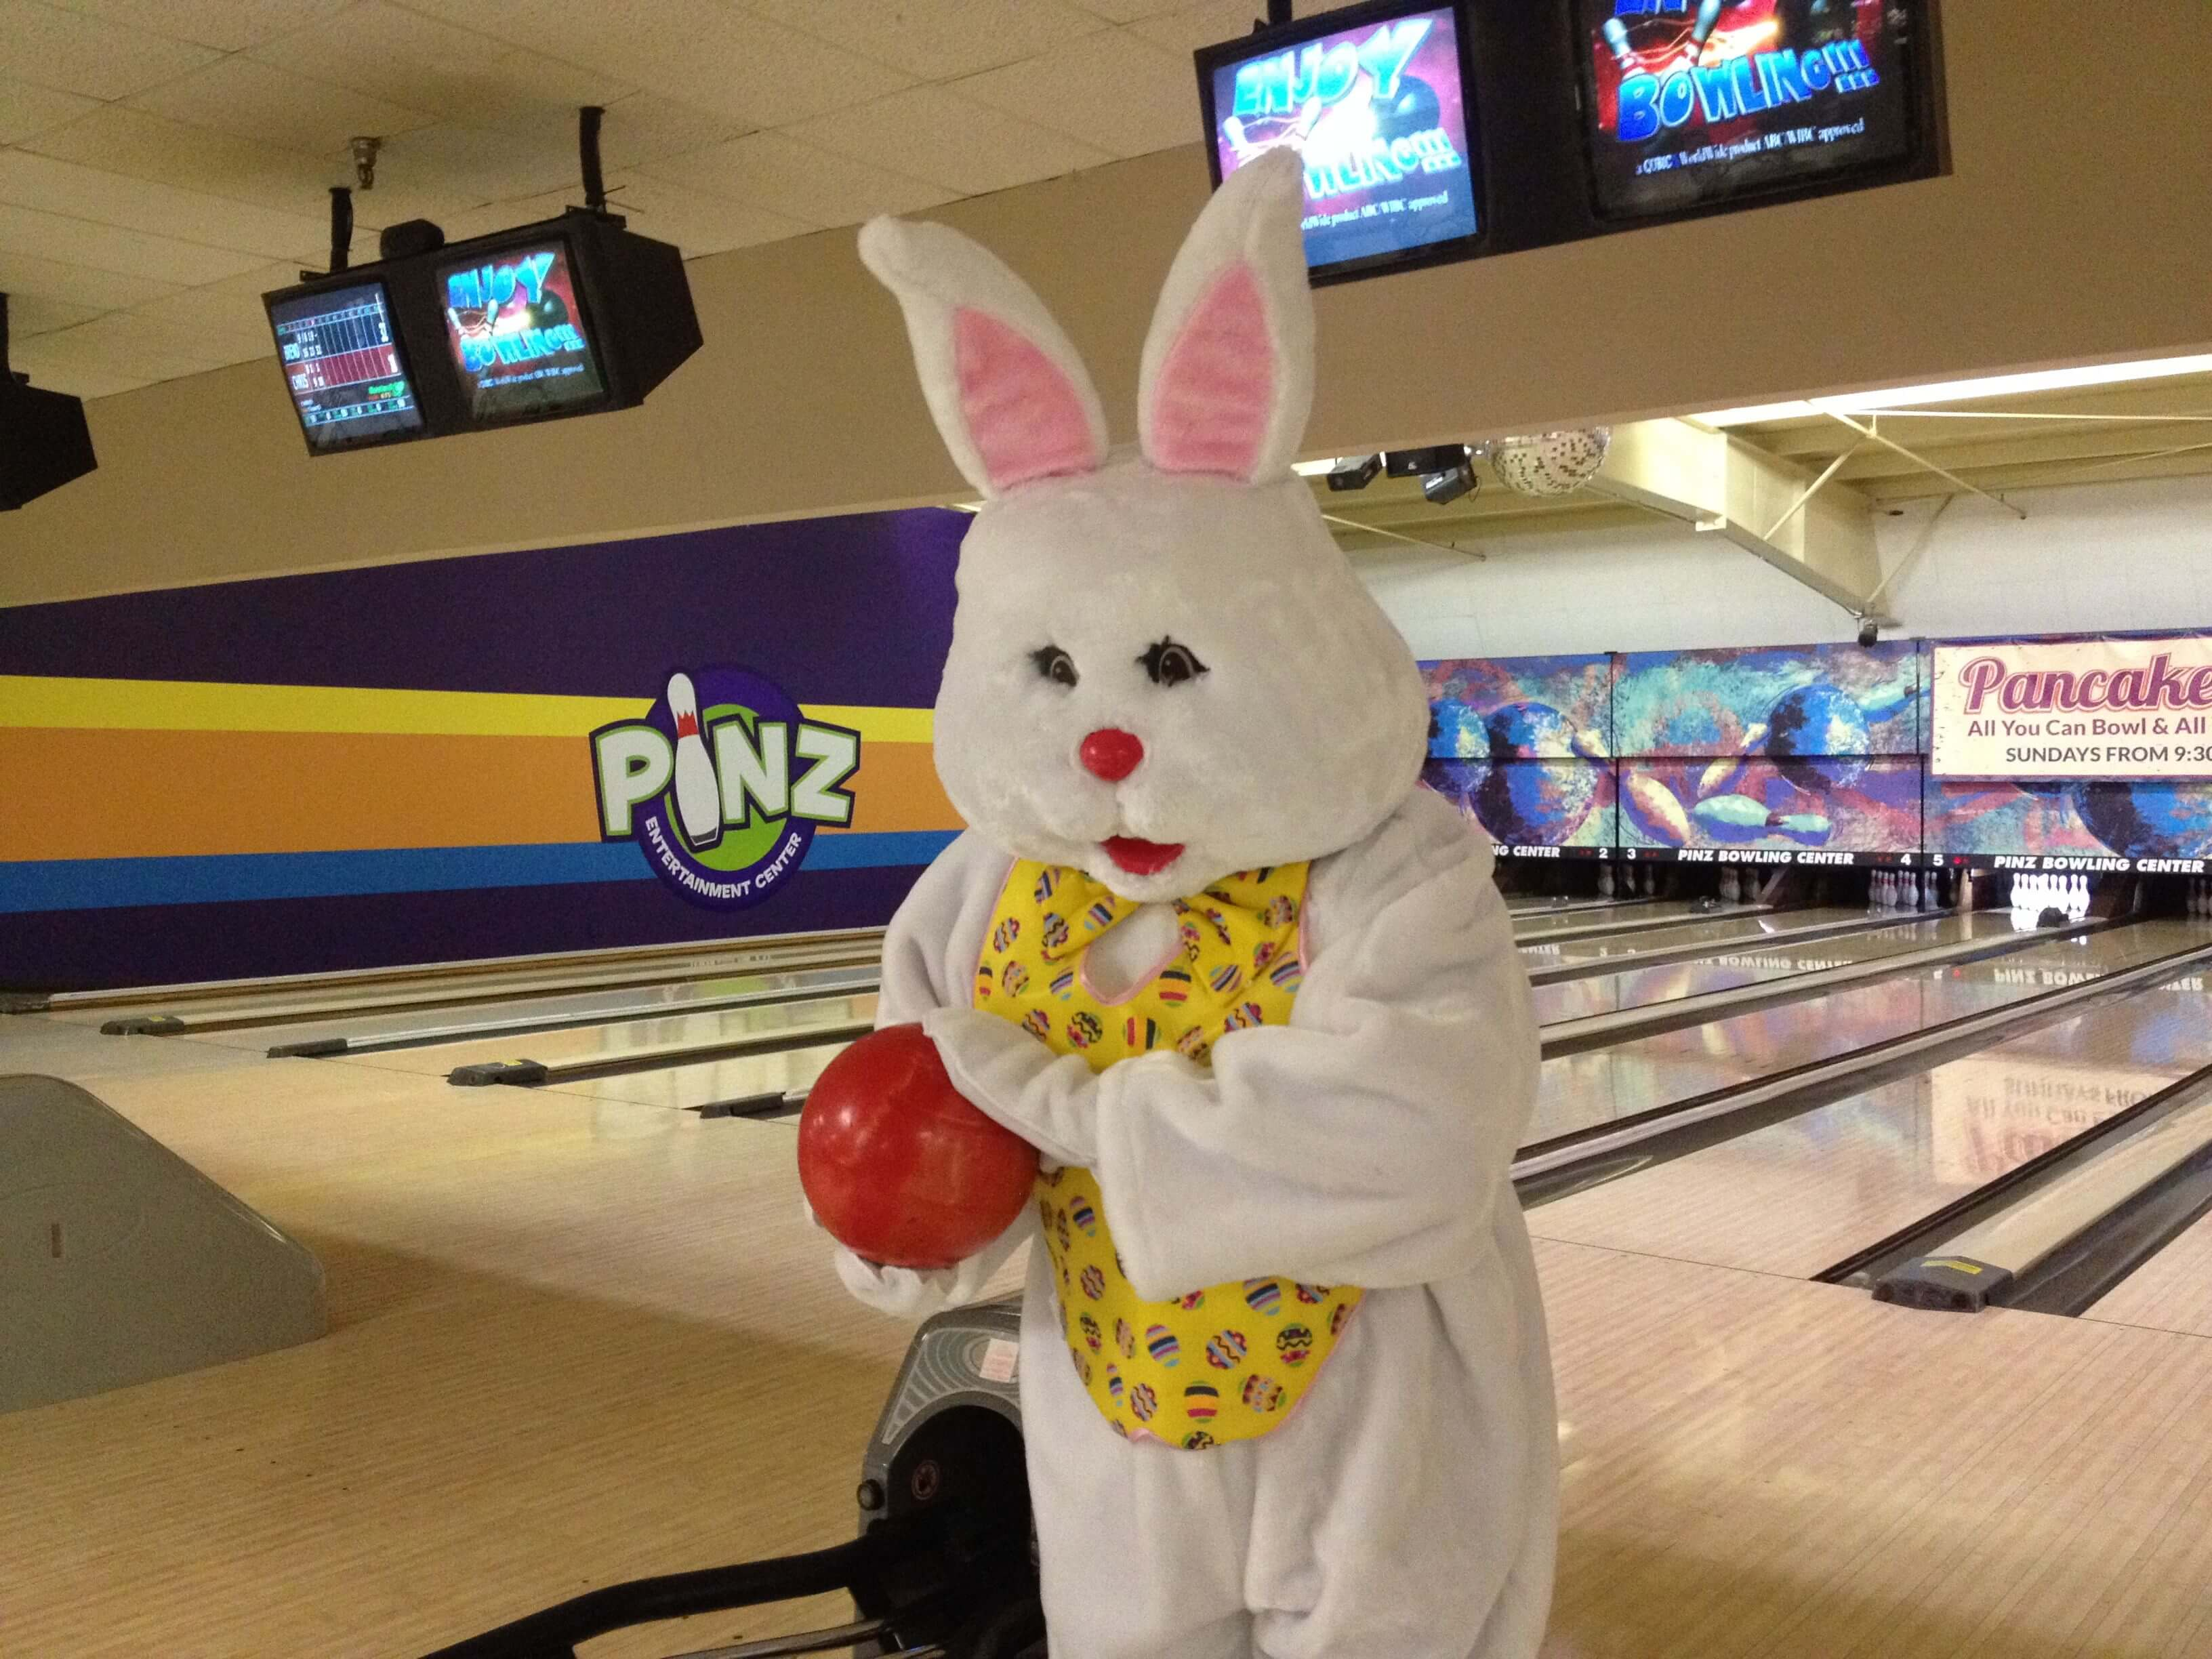 The Easter Bunny bowling